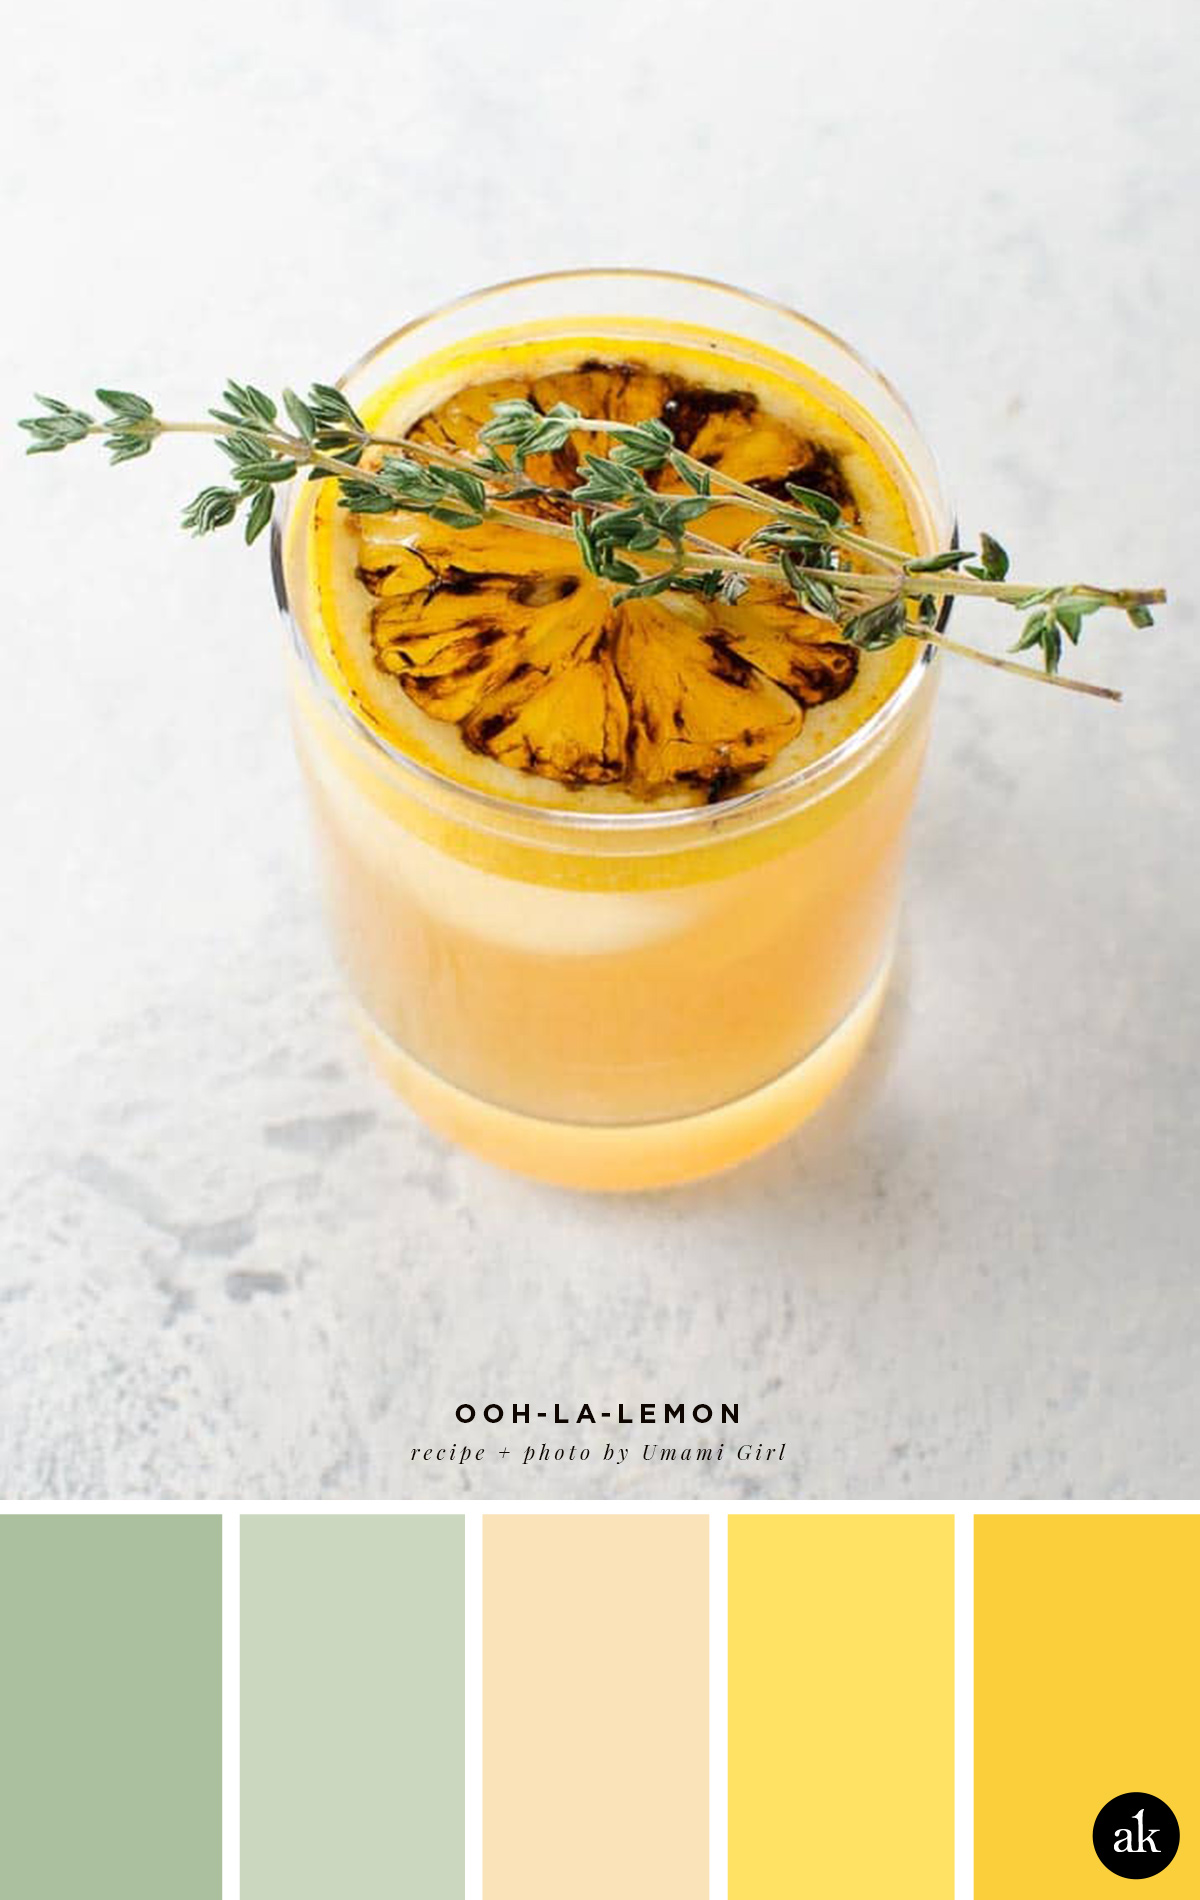 a lemon-cocktail-inspired color palette // soft green, light peach, yellow // recipe and photo by Umami Girl